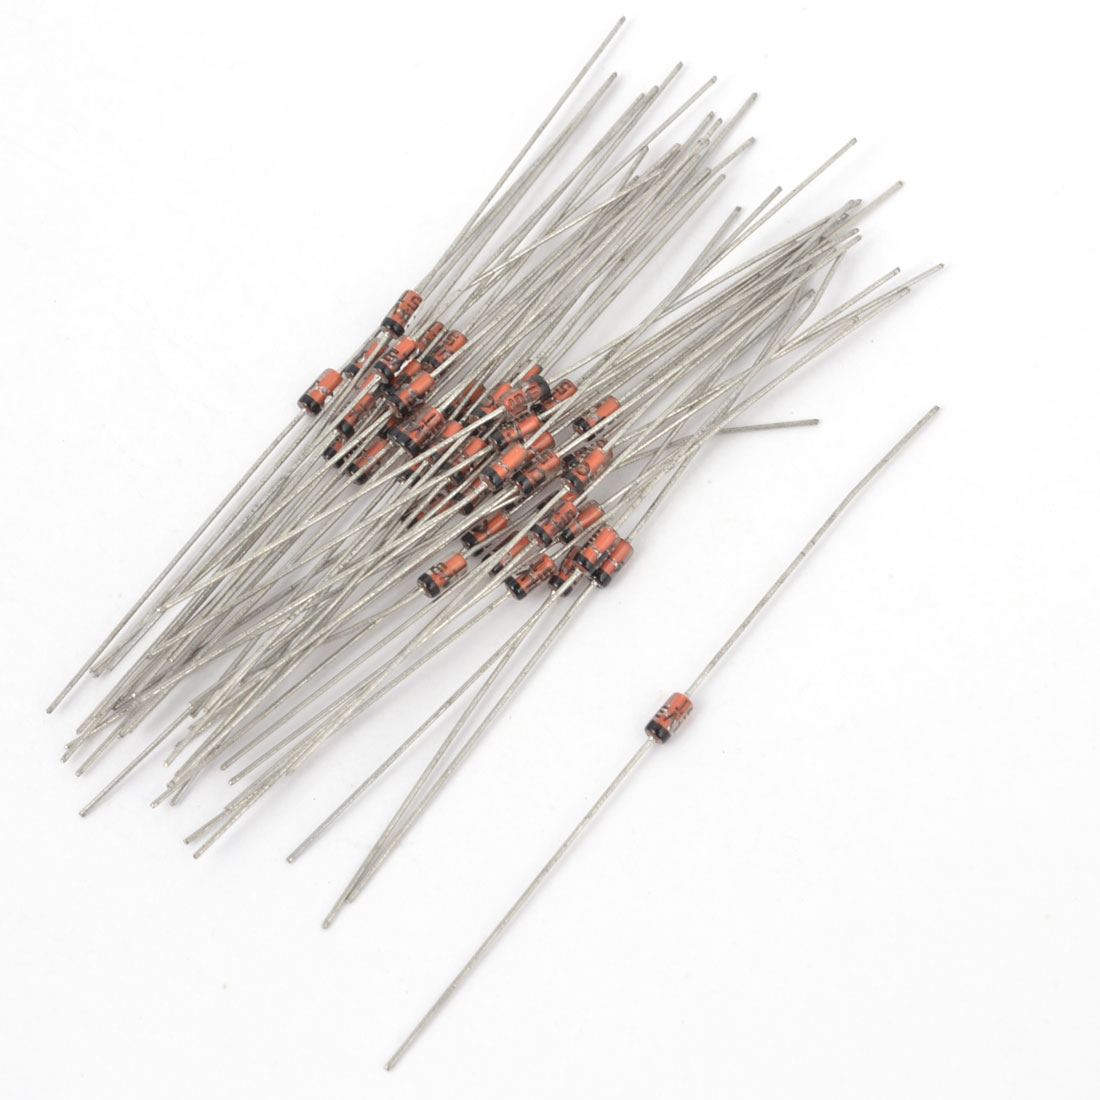 55Pcs Axial Leads 1N5229 4.3V 1/2W 0.5 Watt Glass Sealed Case Silicon Planar Power Zener Diodes